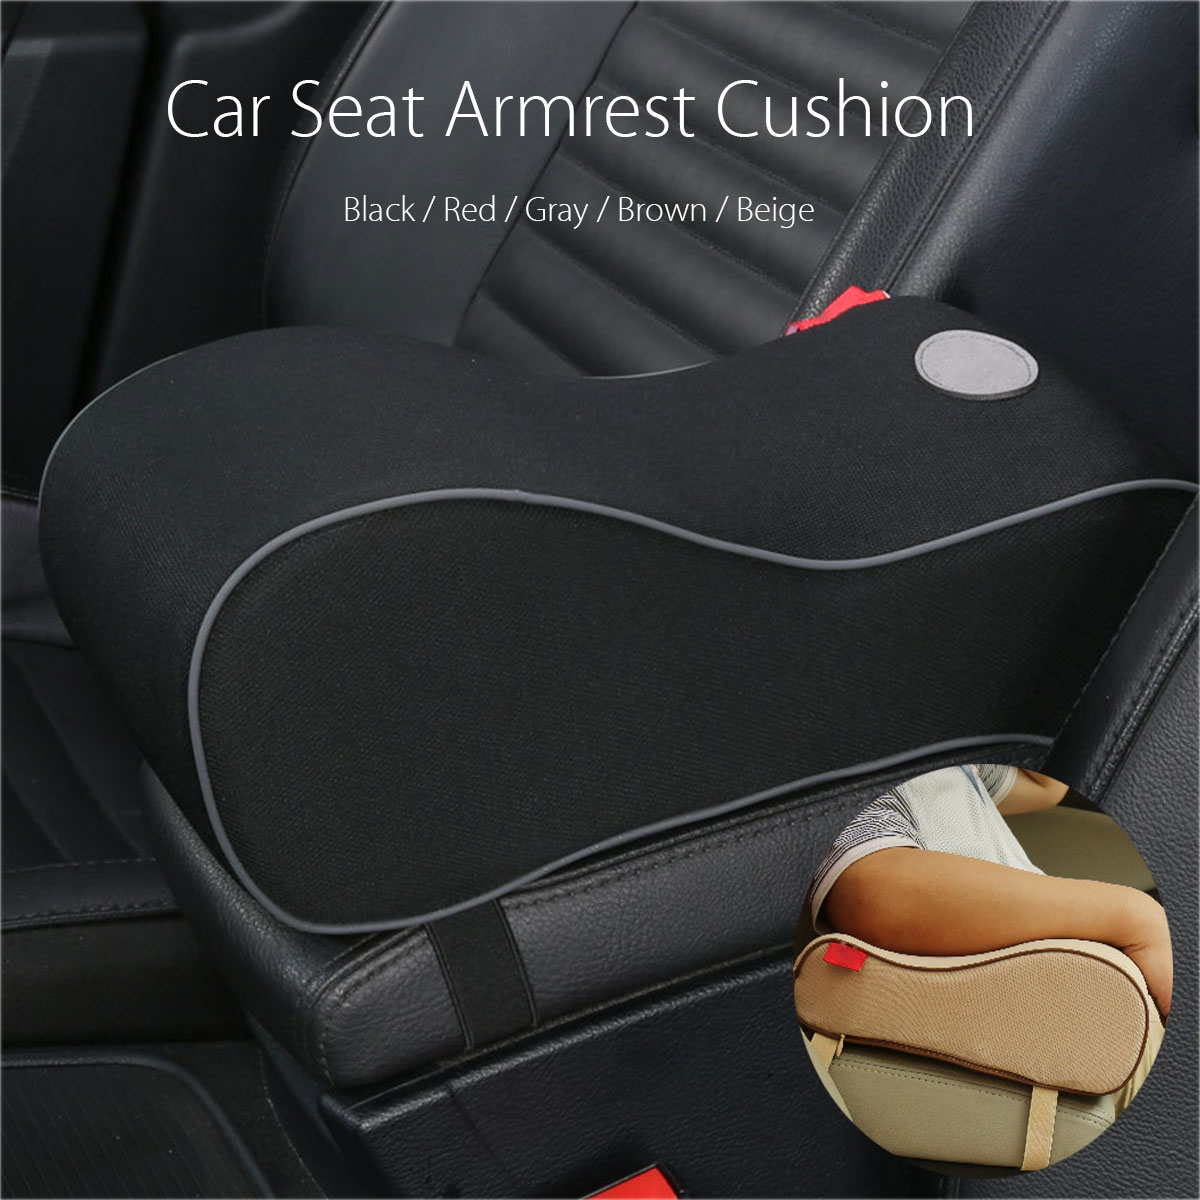 EDJIAN Premium Car PU Leather Center Console Armrest Cushion Pillow Memory Foam with Side Pocket for phone brown